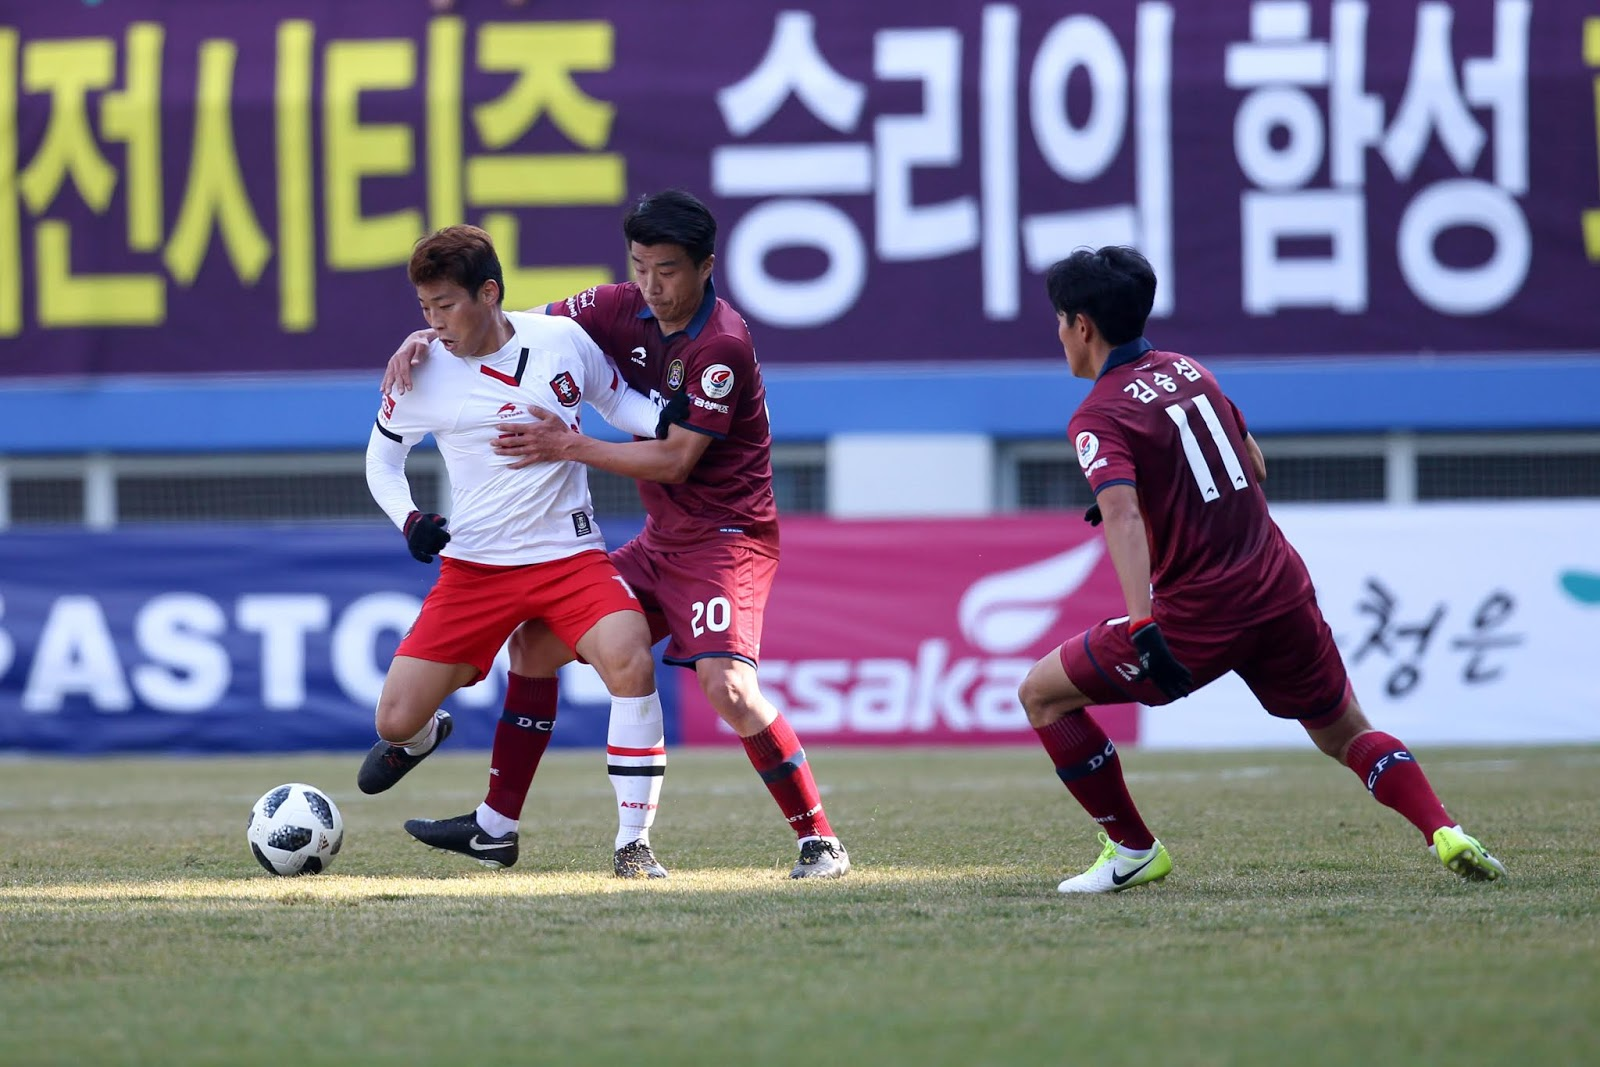 Preview: Bucheon 1995 vs Daejeon Citizen K League 2 Round 16